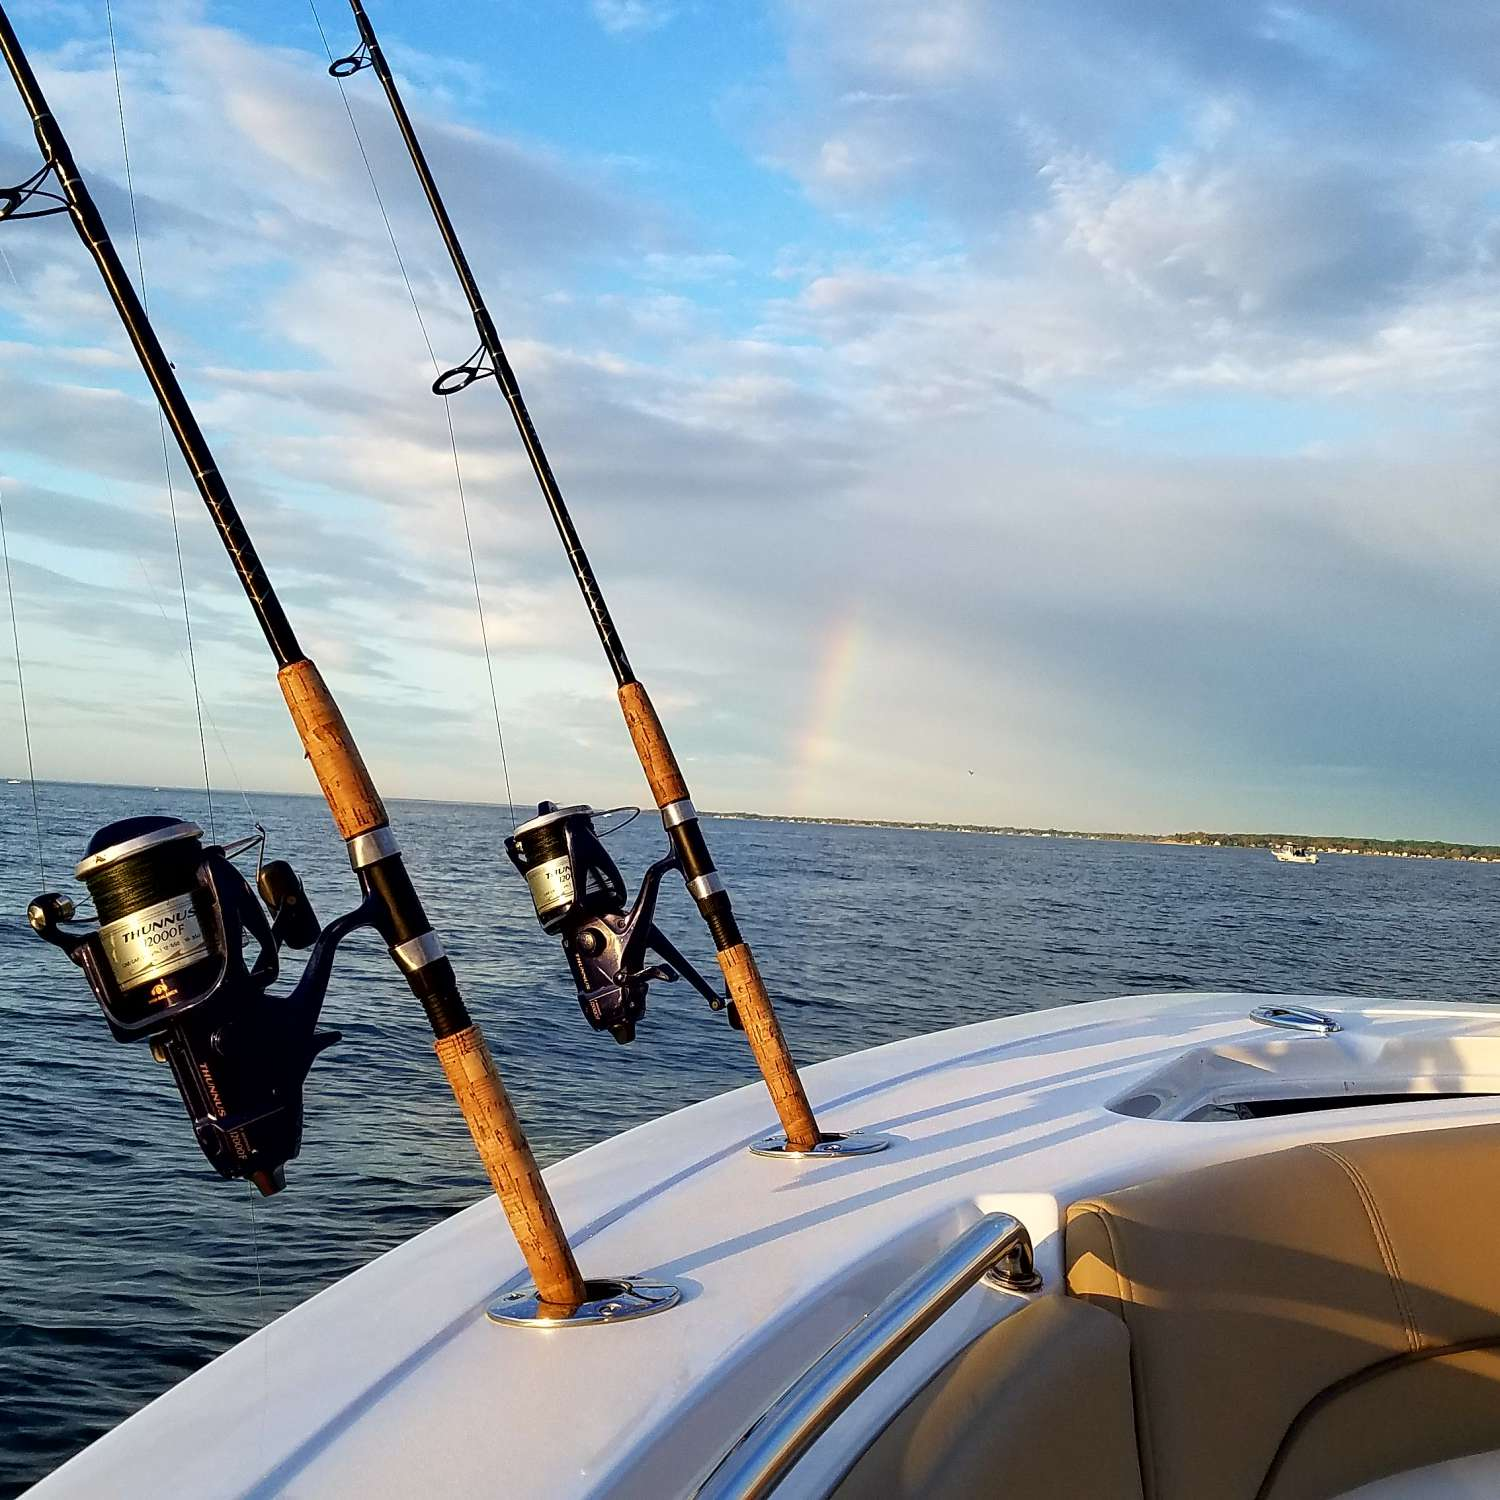 Title: Sportsman Rainbow - On board their Sportsman Open 252 Center Console - Location: Grasonville, Maryland. Participating in the Photo Contest #SportsmanApril2017